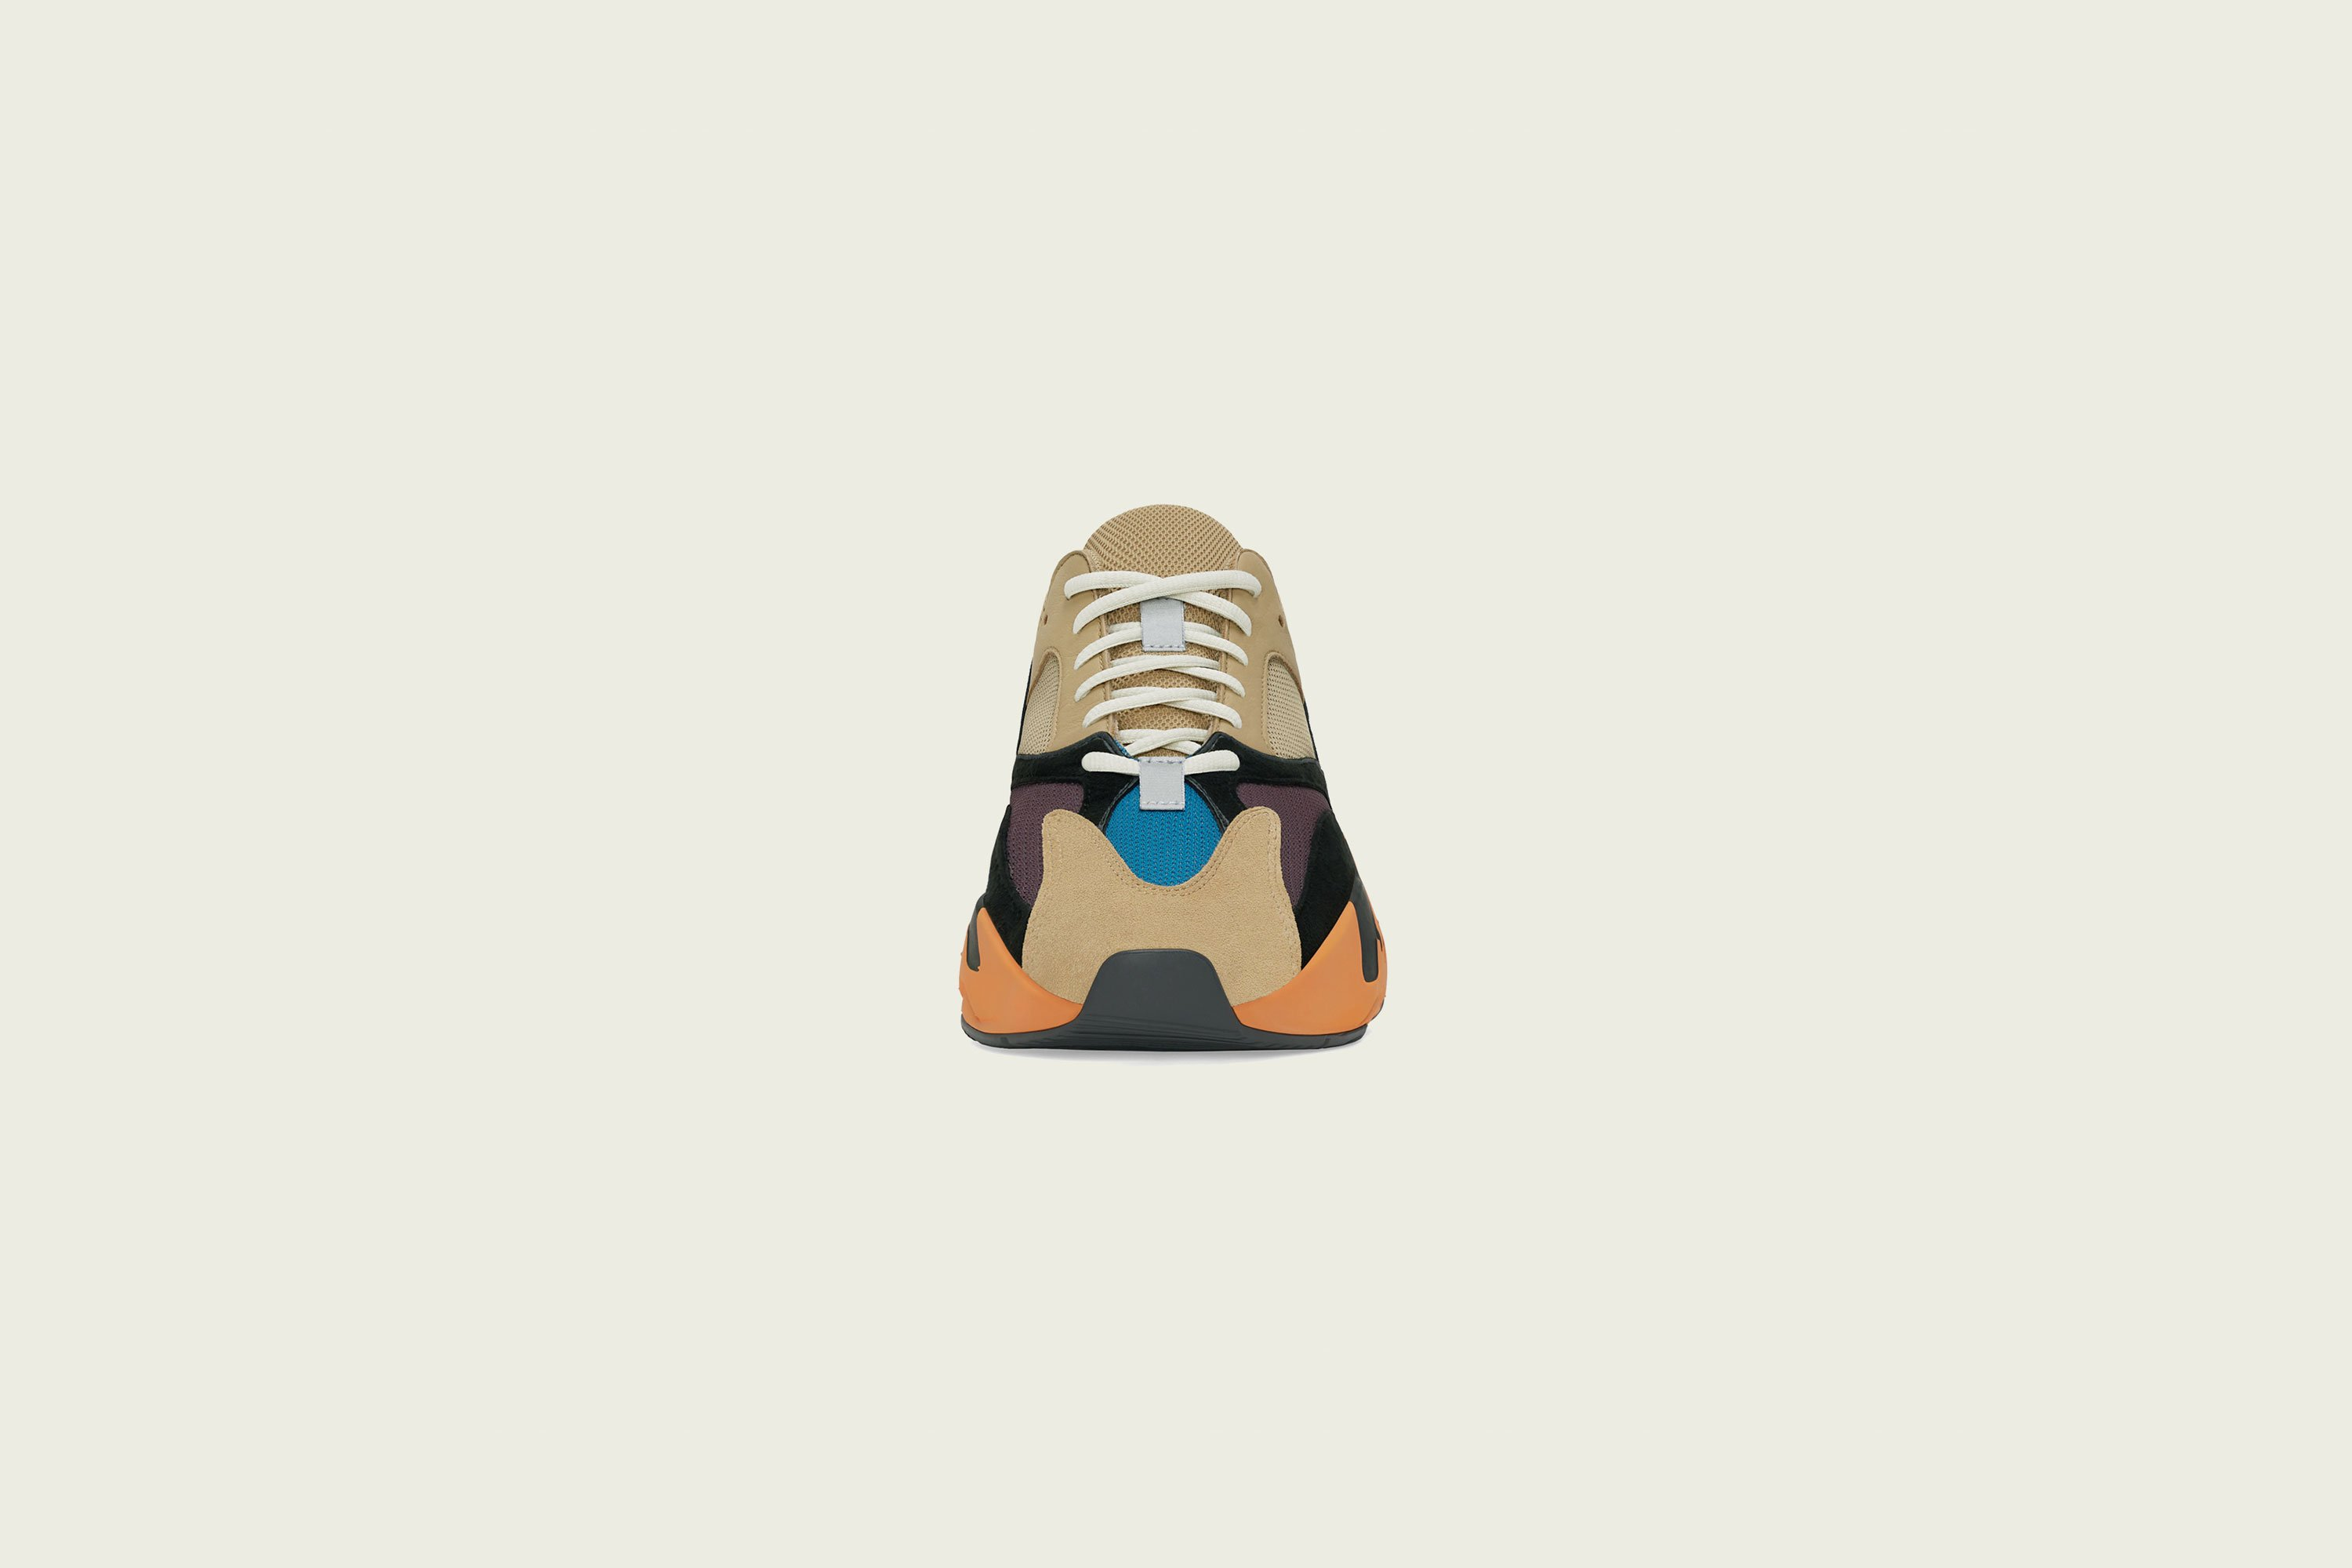 adidas - Yeezy Boost 700 - Enflame Amber - Up There